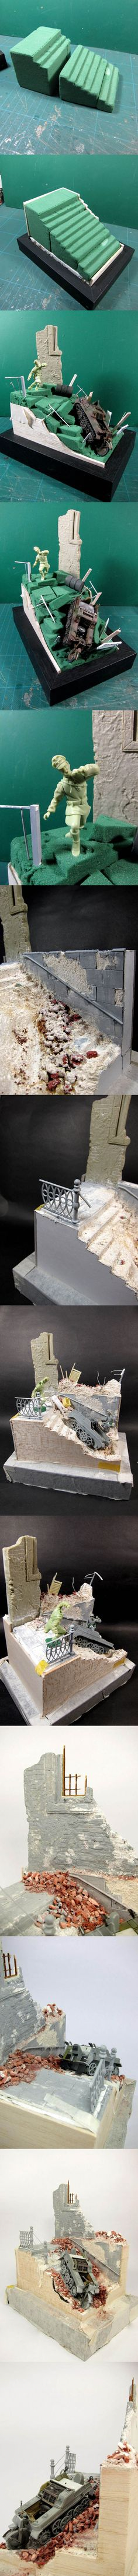 Building small diorama - step by step part Military Photos, Military Art, Diaroma Ideas, Warhammer Terrain, Modeling Techniques, Model Maker, Wargaming Terrain, Military Modelling, Military Diorama